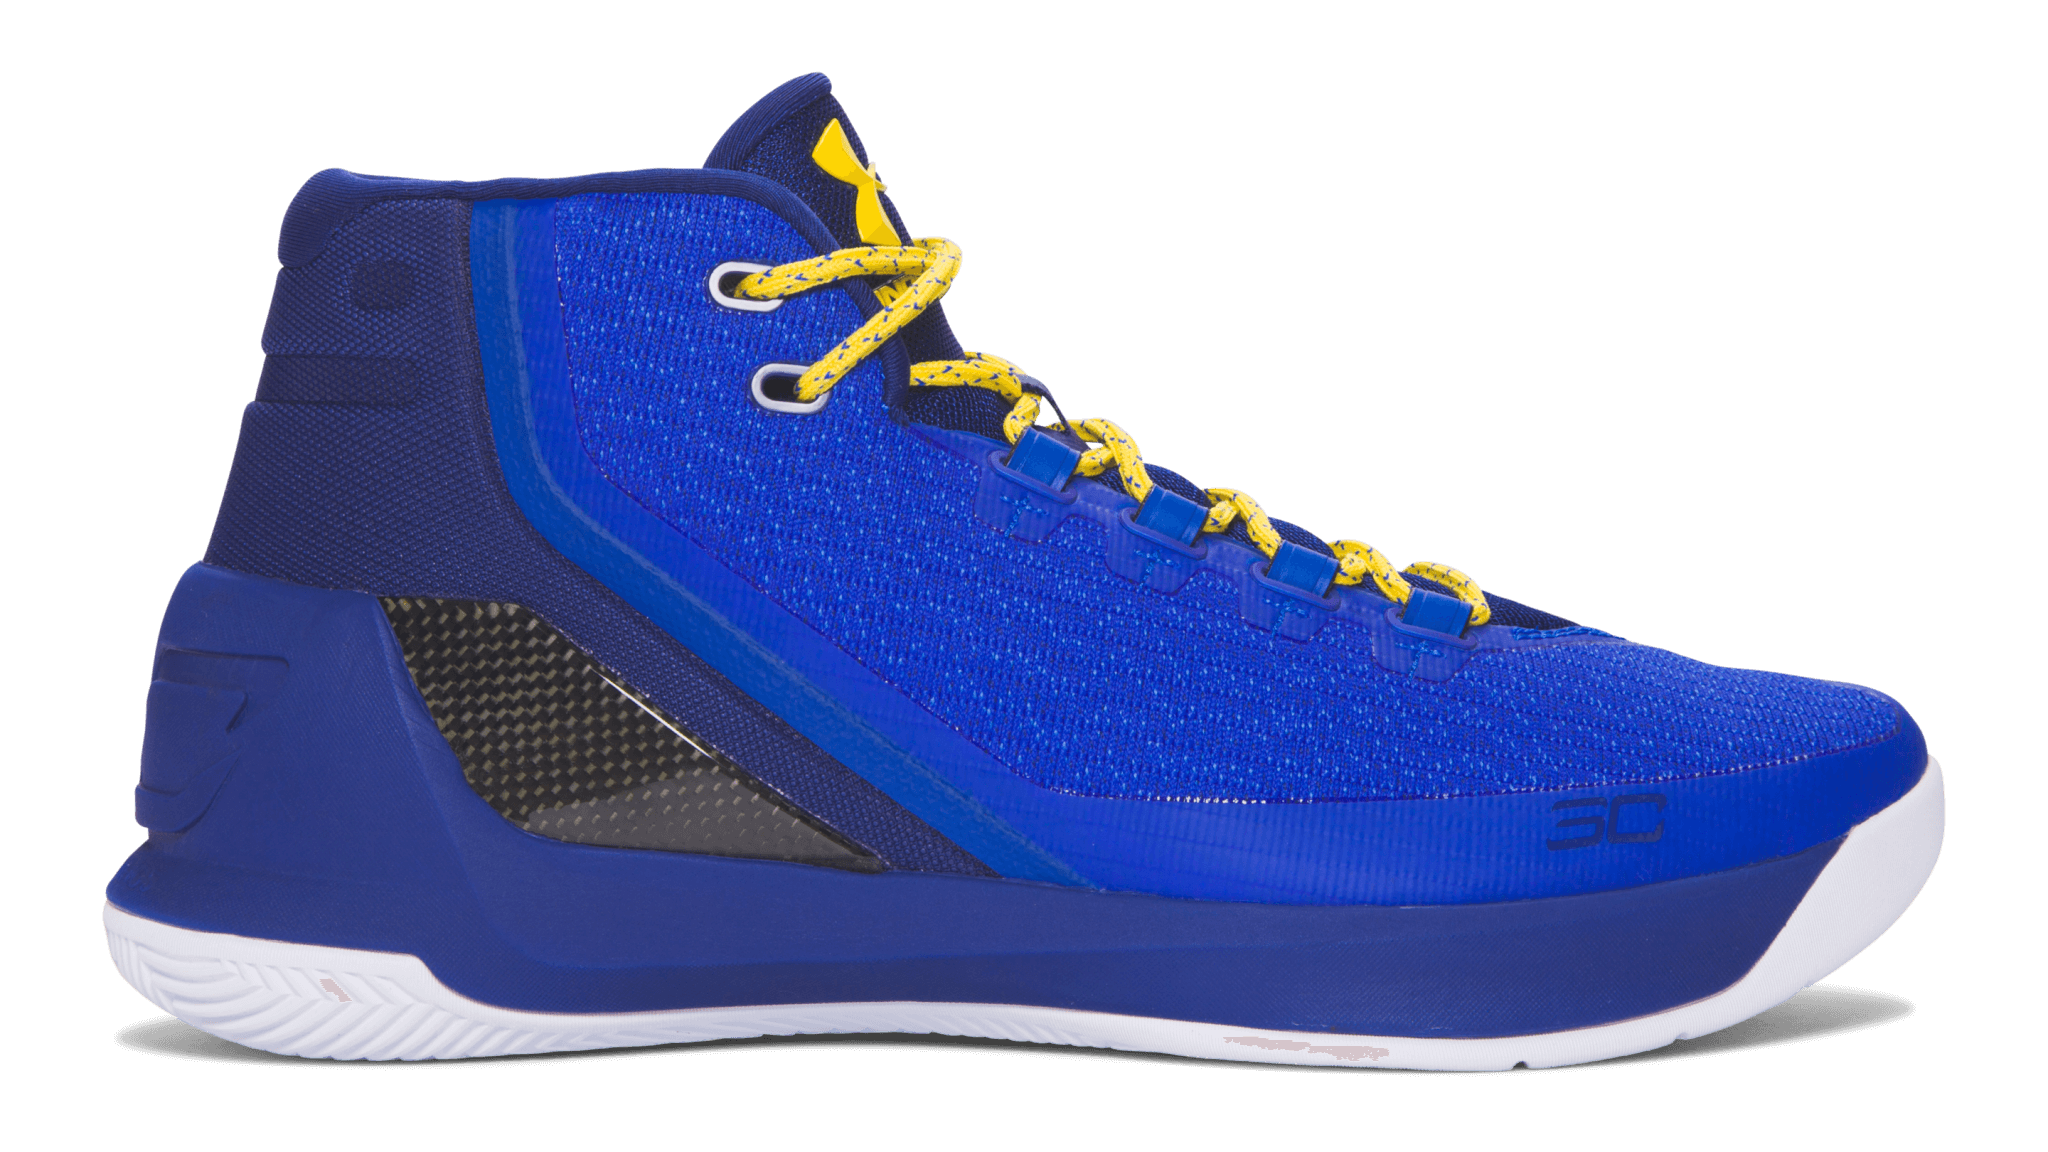 4f7317ce01a0 Under Armour Curry 3 Performance Review